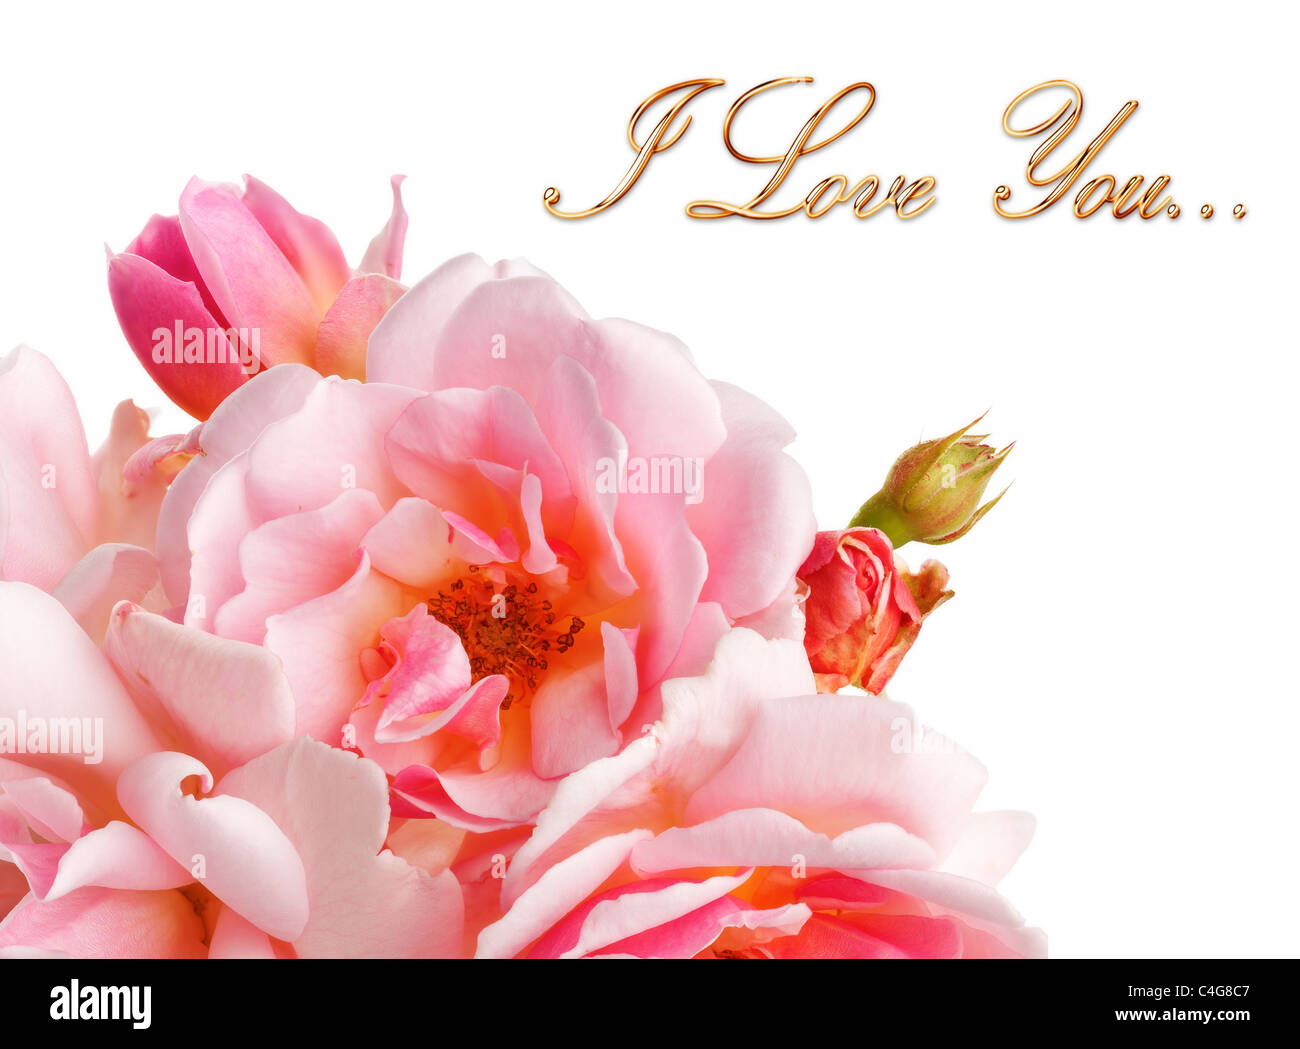 Pink Roses On A Pure White Background With I Love You Message Stock Photo Alamy